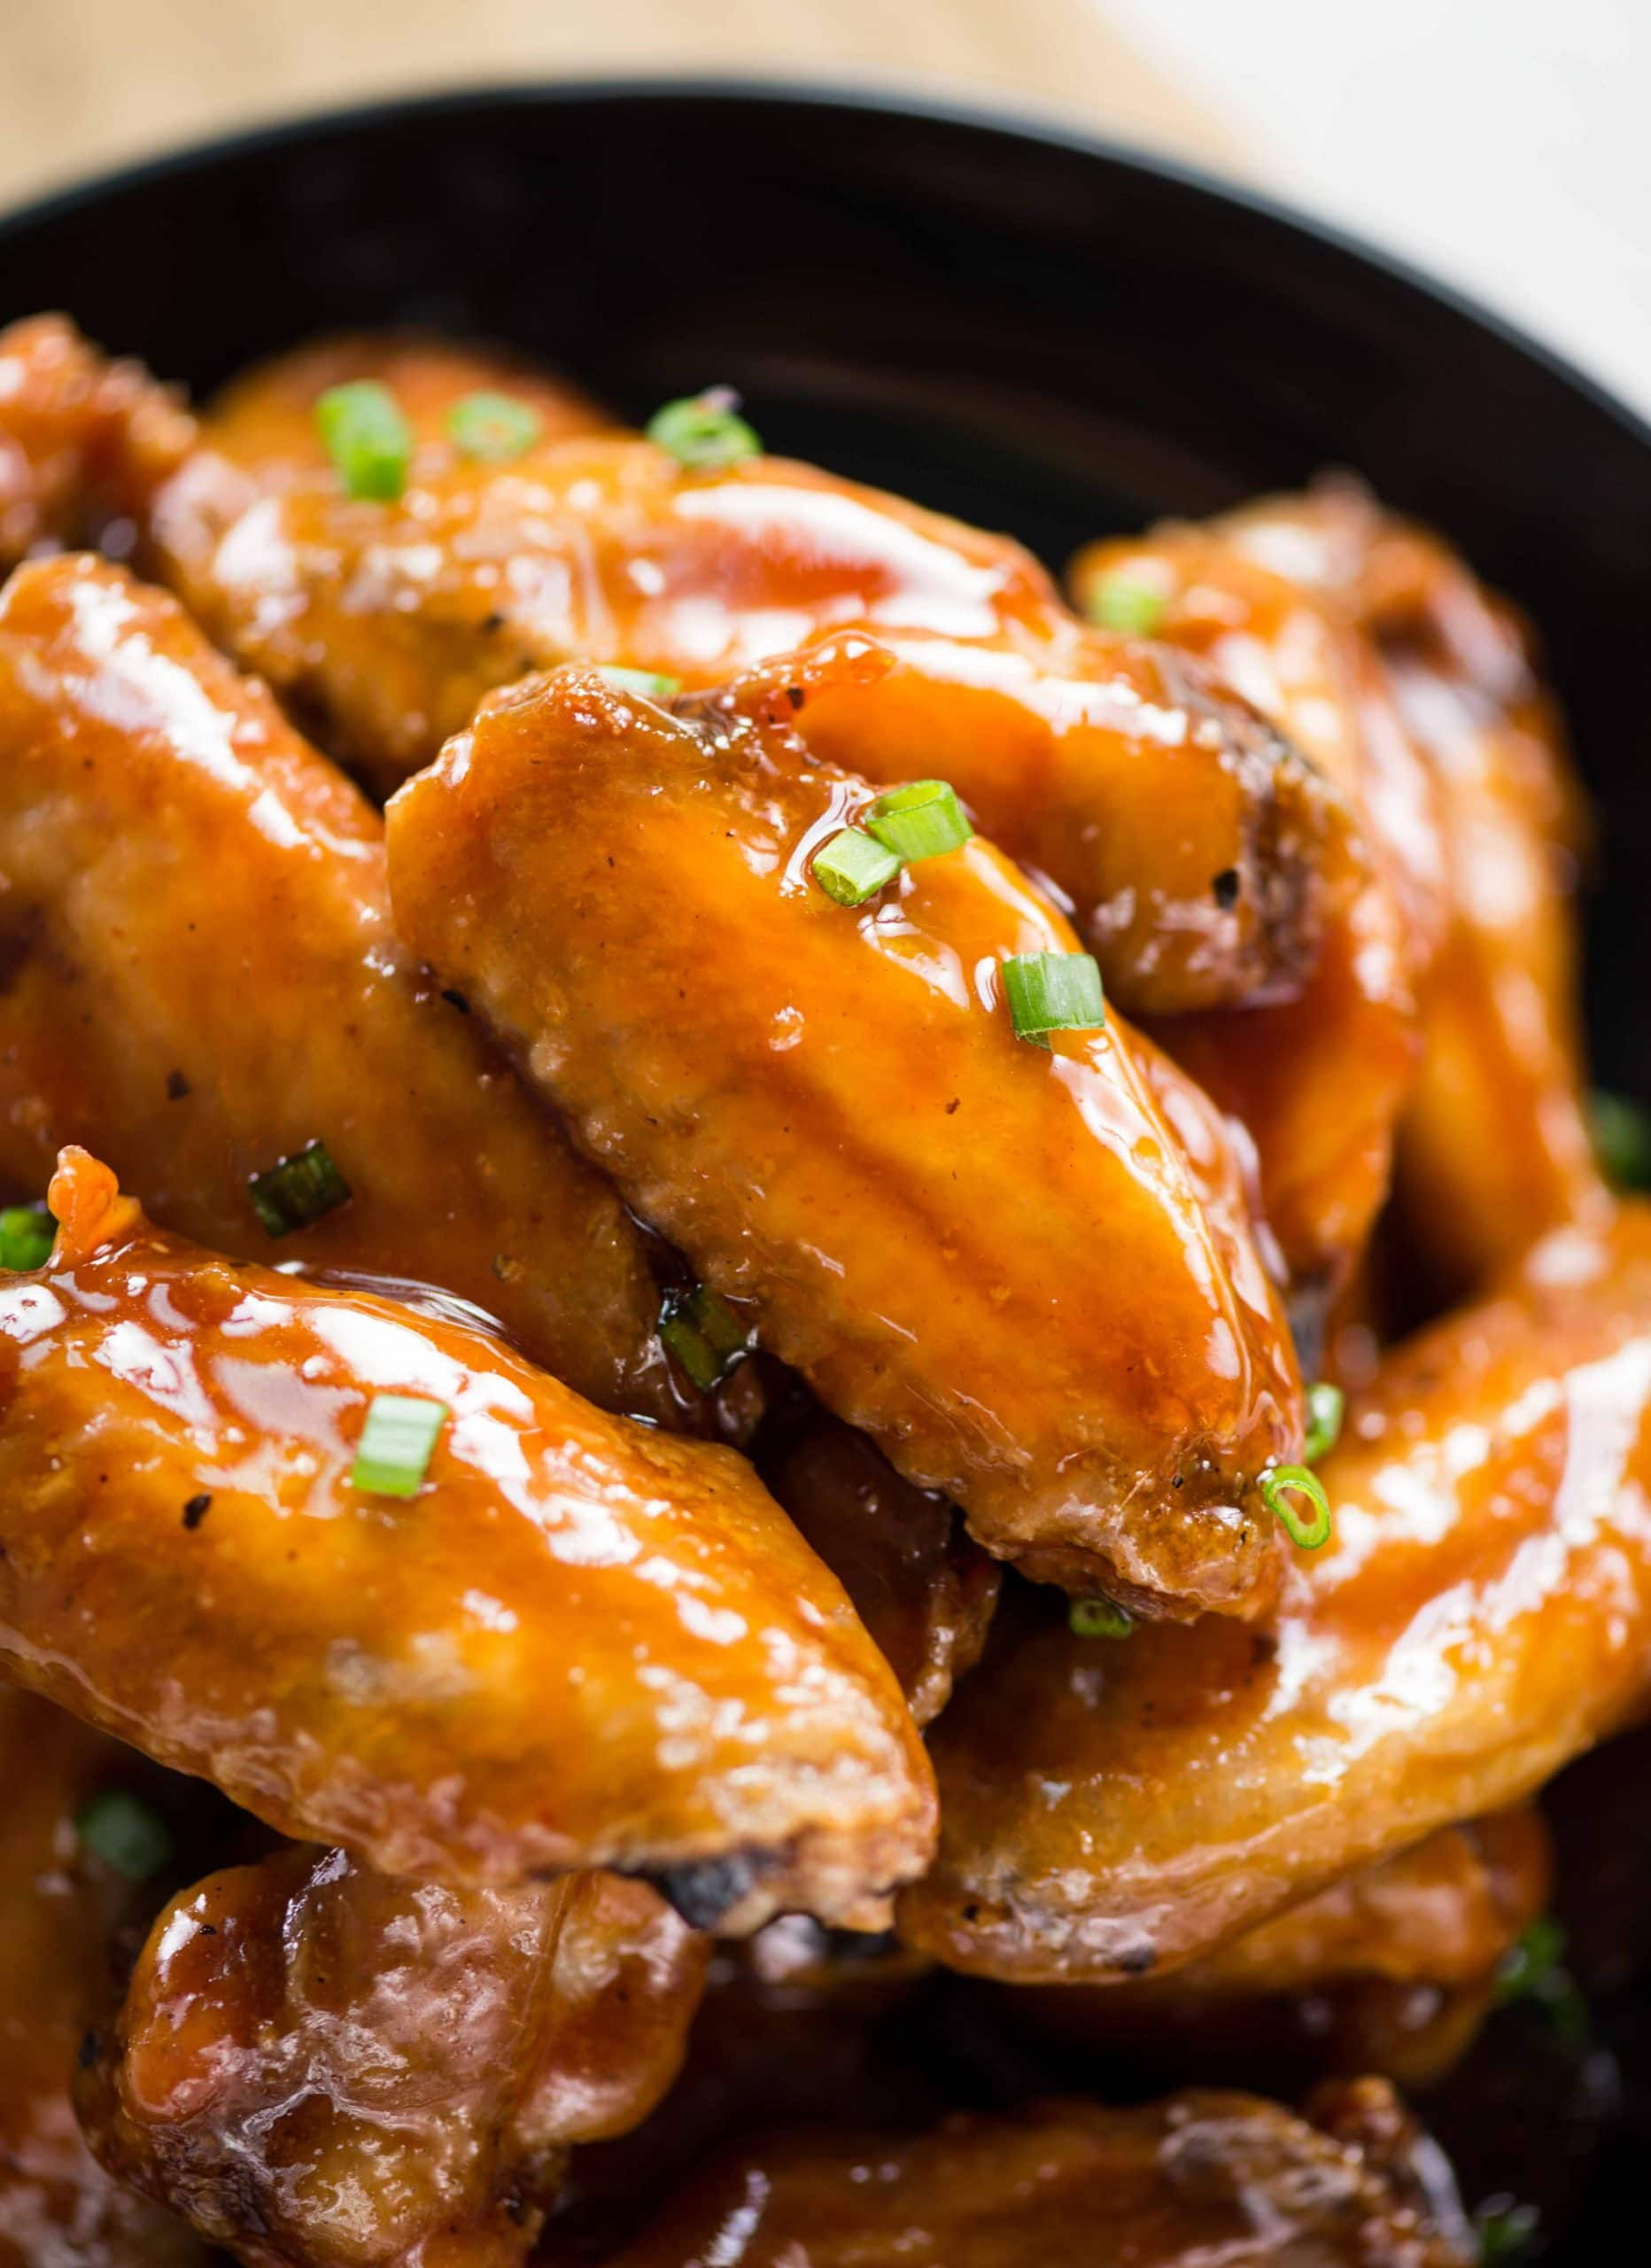 Oven baked Crispy Chicken wings tossed is a sweet and sour sticky sauce.